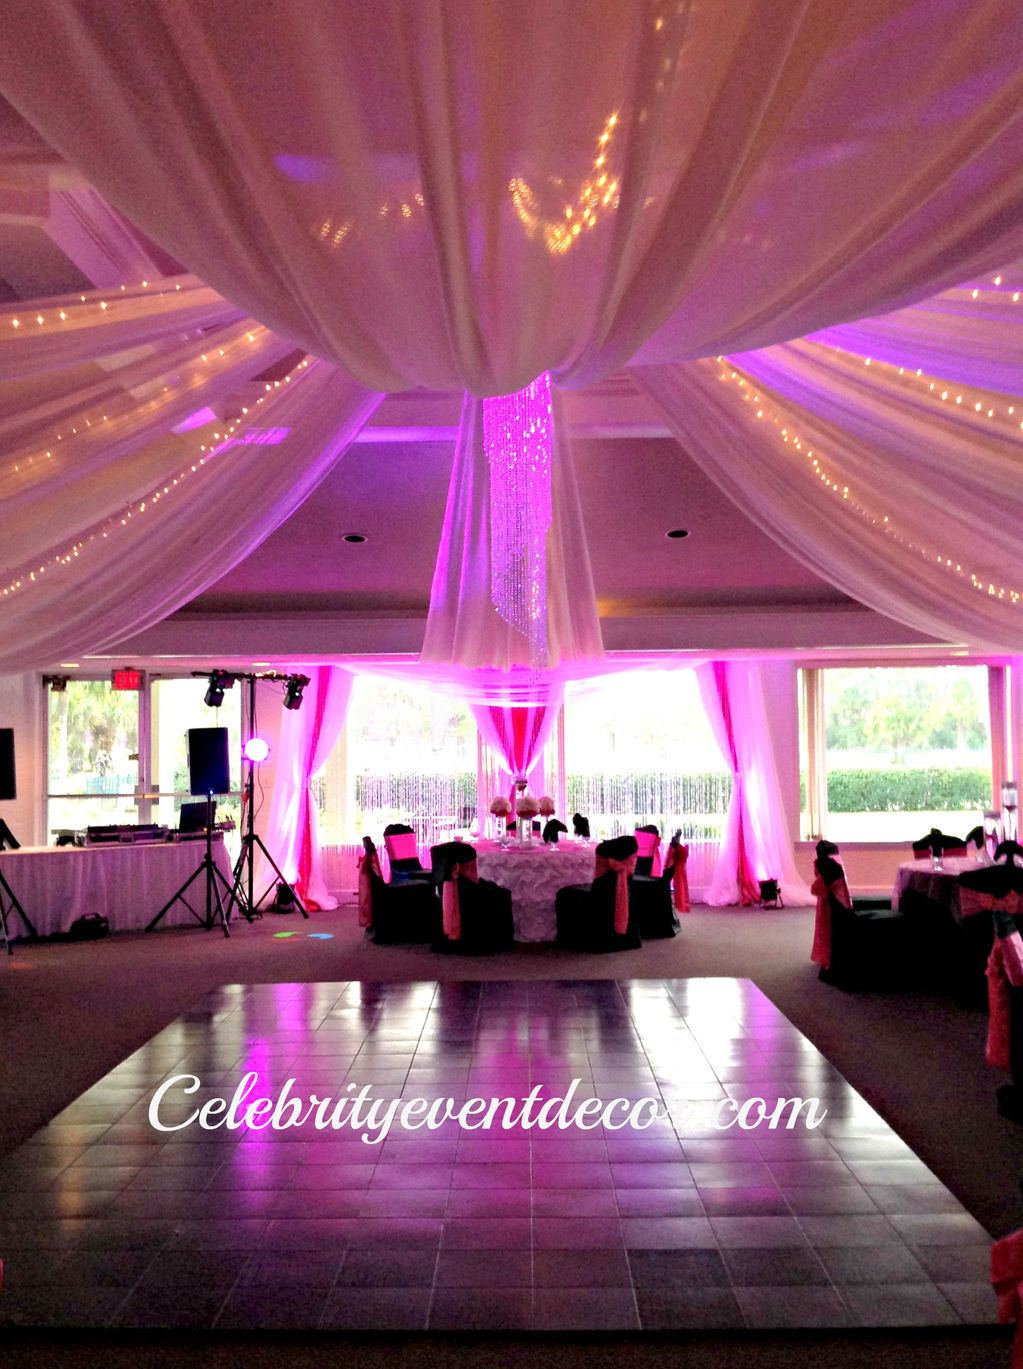 Celebrity event decor banquet hall jacksonville fl for 16 birthday decoration